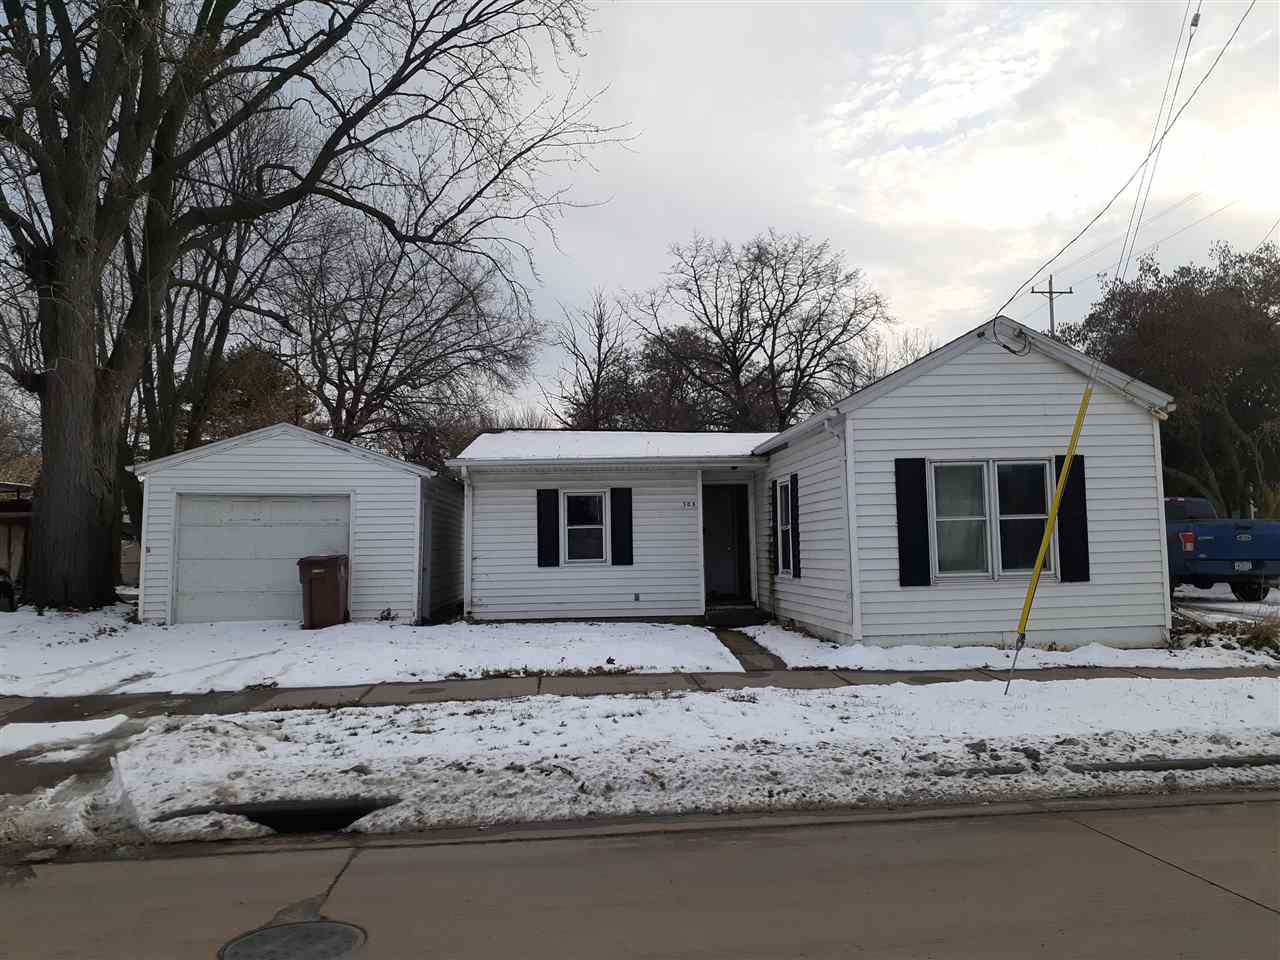 Lots of potential with this single story home conveniently located near amenities in Menasha.  Bring your hammer and creative ideas!